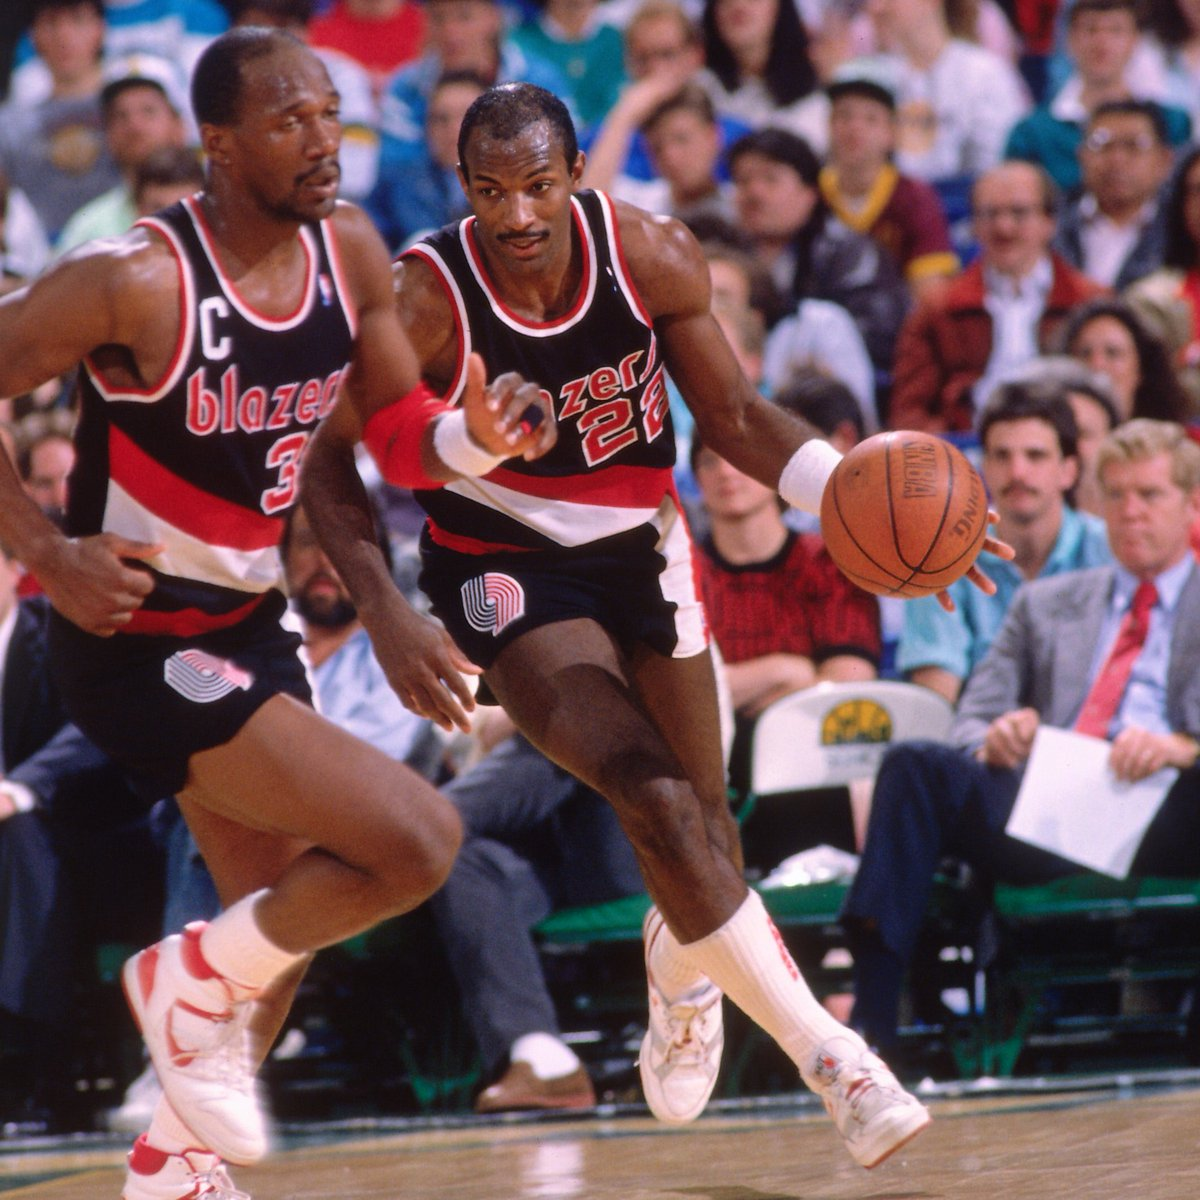 Damian Lillard (40 PTS, 13 AST) and CJ McCollum (28 PTS, 10 AST) are the first @trailblazers duo with 25+ PTS and 10+ AST in a game since Clyde Drexler (34 PTS, 12 AST) and Terry Porter (25 PTS, 10 AST) on March 6, 1992.